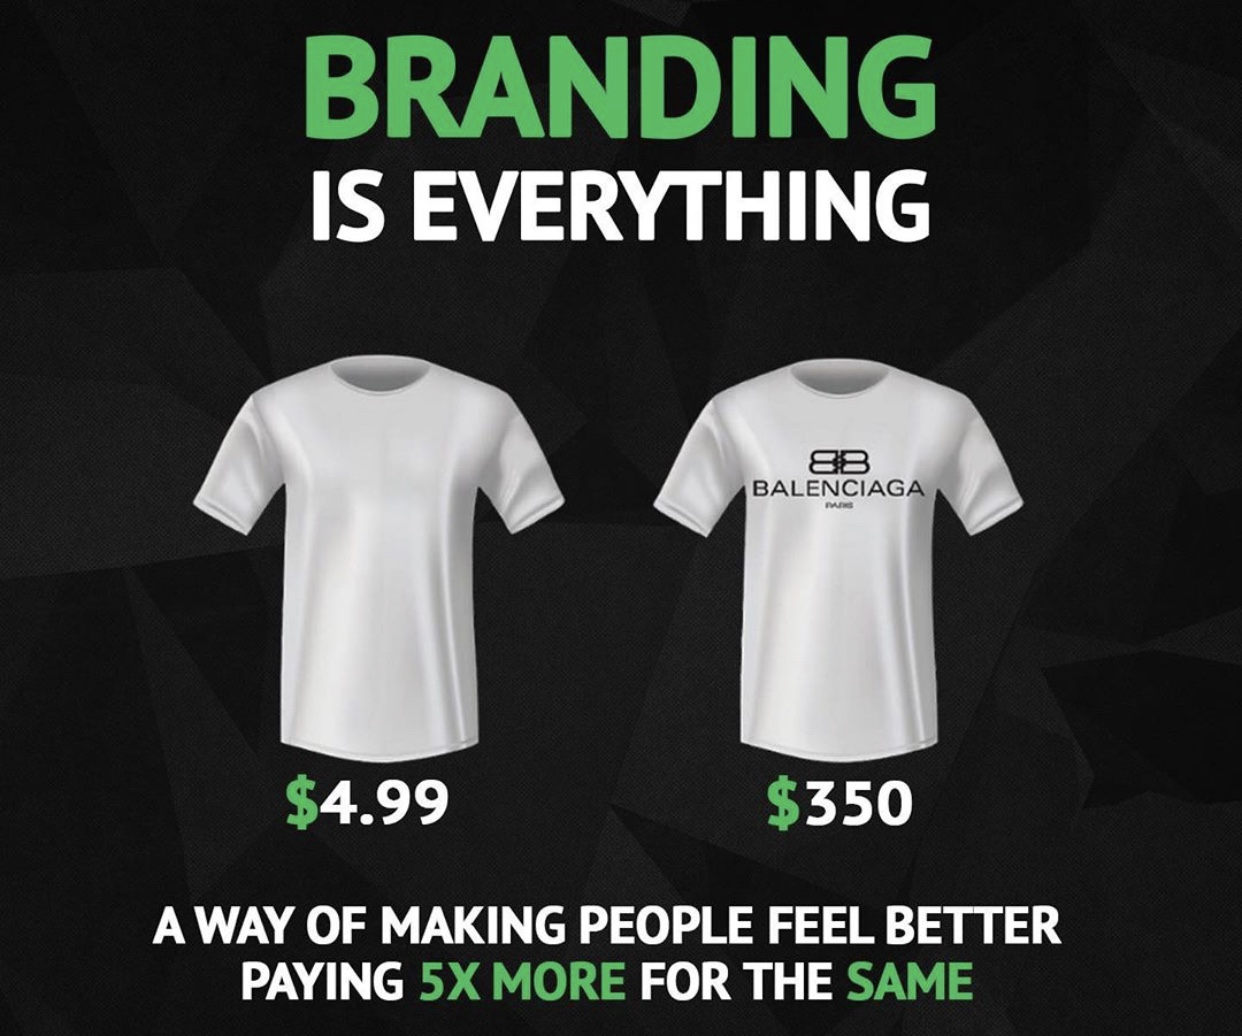 The sheer importance of branding